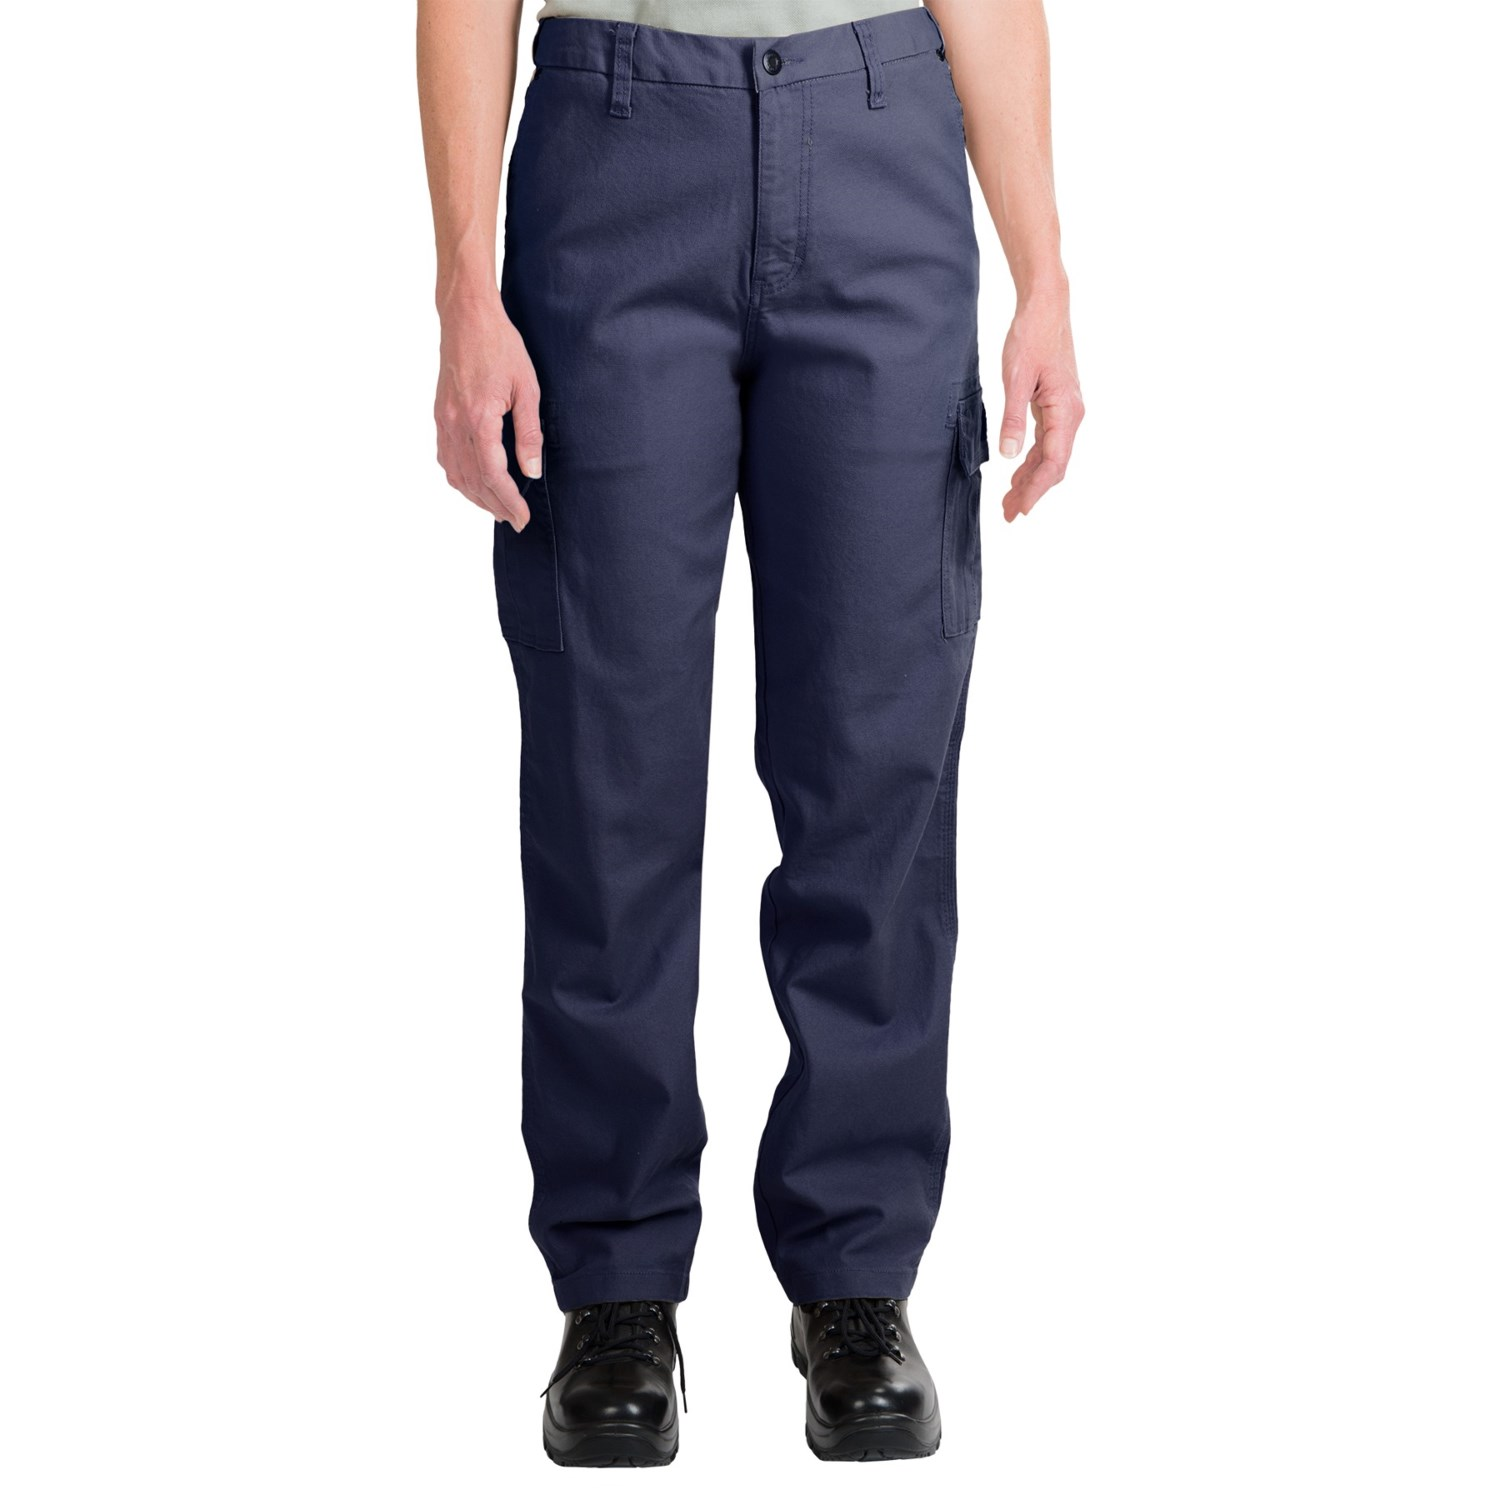 Awesome Please Enable Javascript And Refresh The Page Newfacelook Womens Military Style Trousers Are Of Soft Feel And Are Perfectly Made For All Seasons It Has Six Pockets And Zip Fastening At Front 100% Cotton Is Used In Its Construction